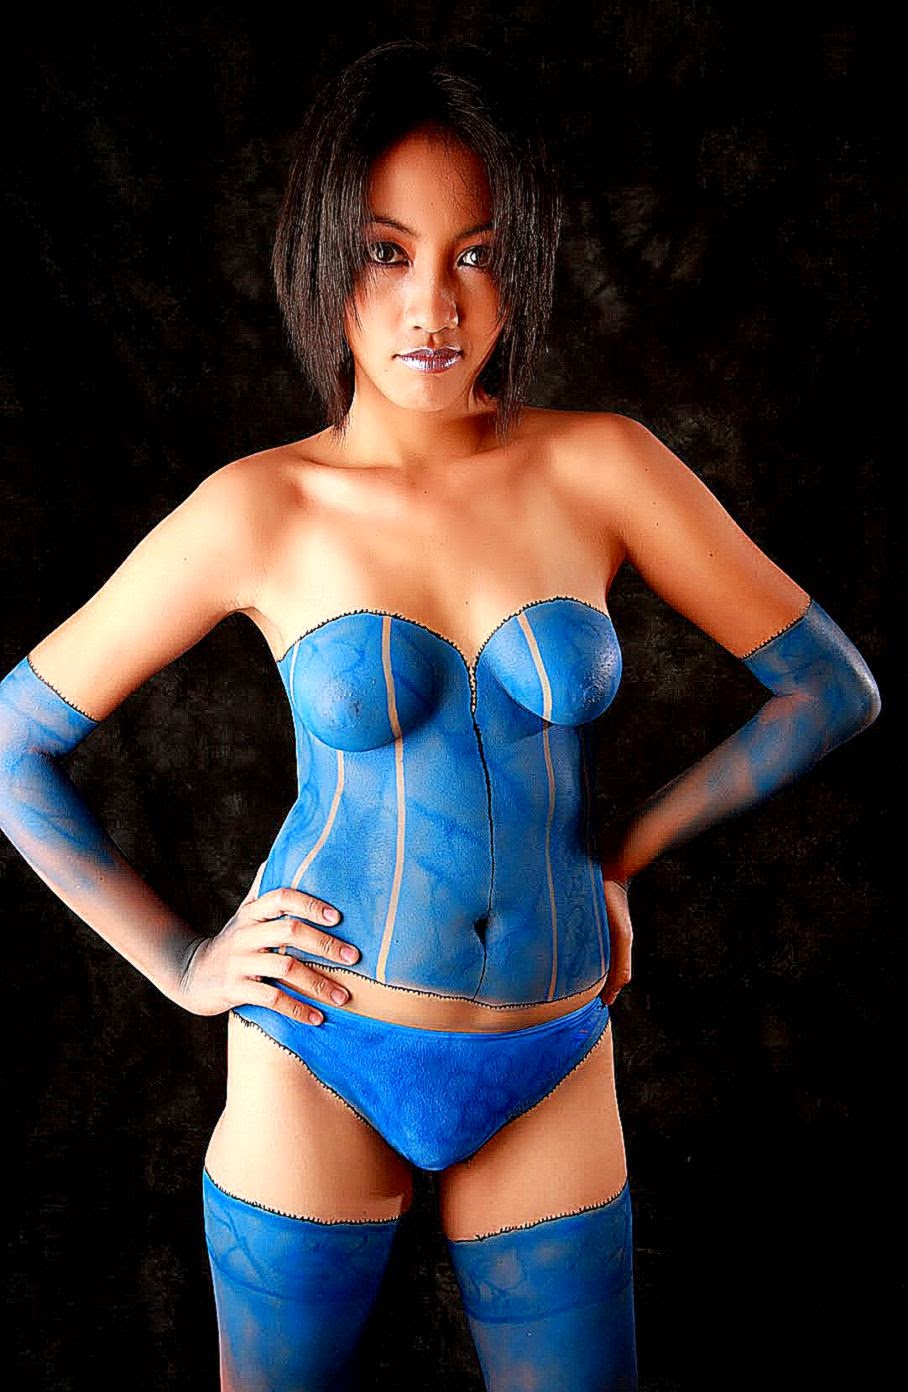 body painting galleries